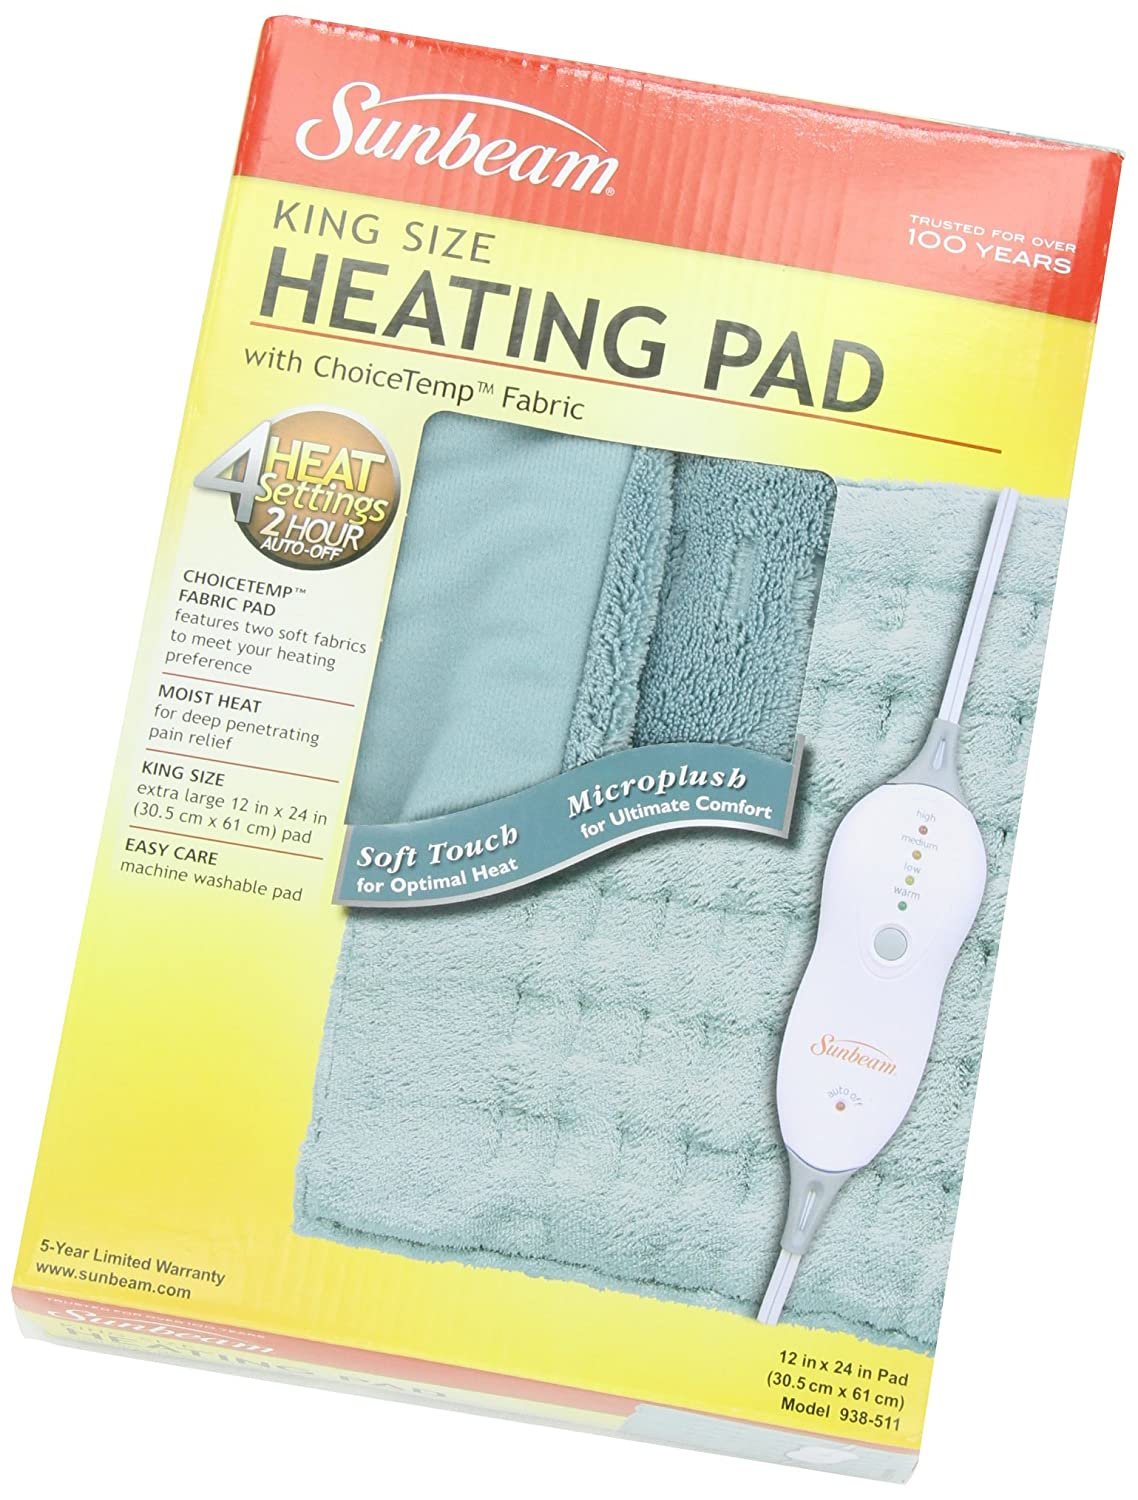 sunbeam microplush king size heating pad with led controller new free shipping